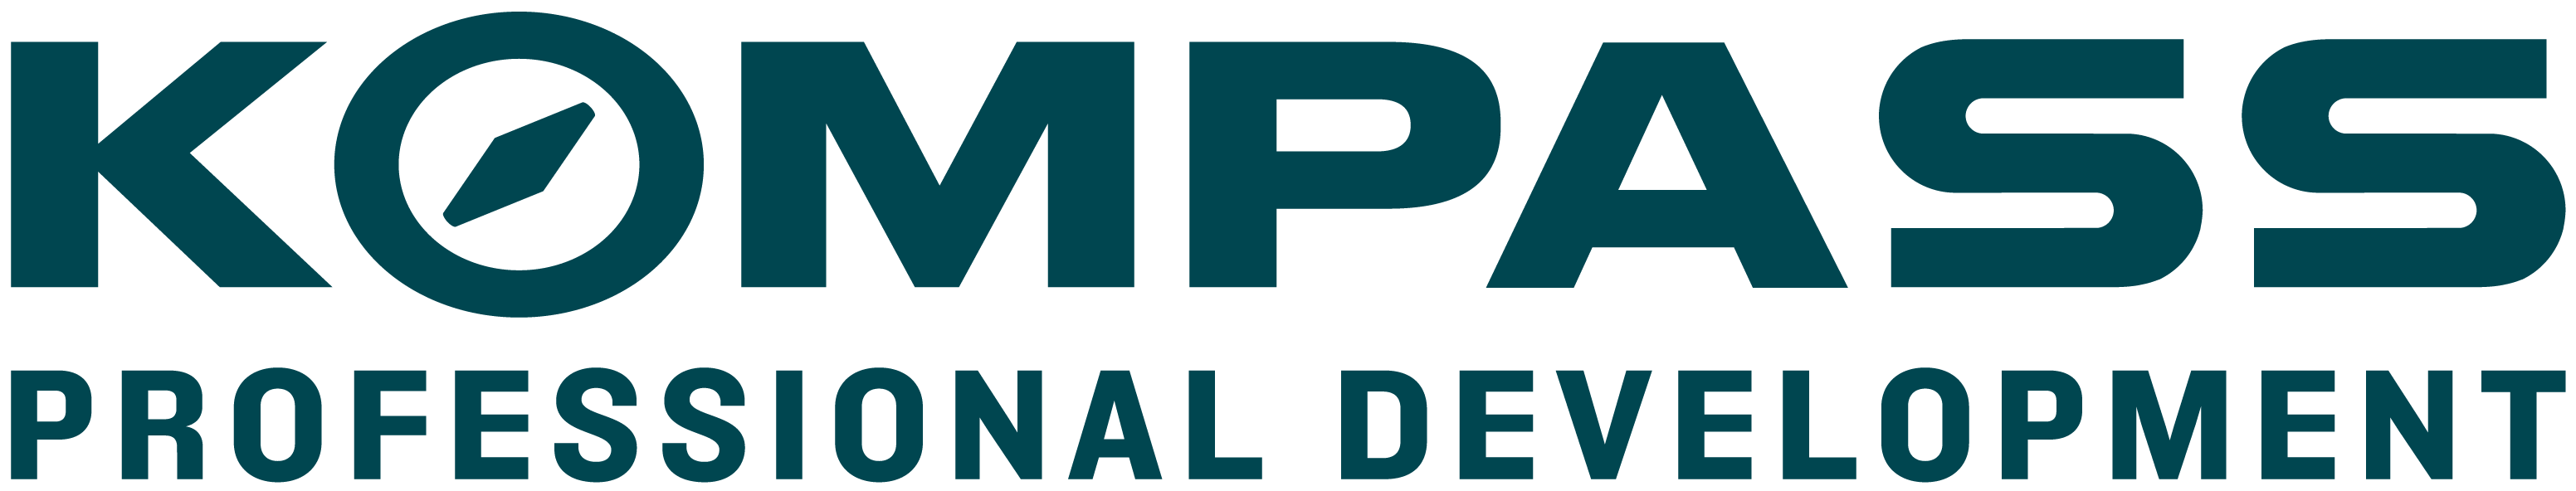 Kompass Professional Development Logo